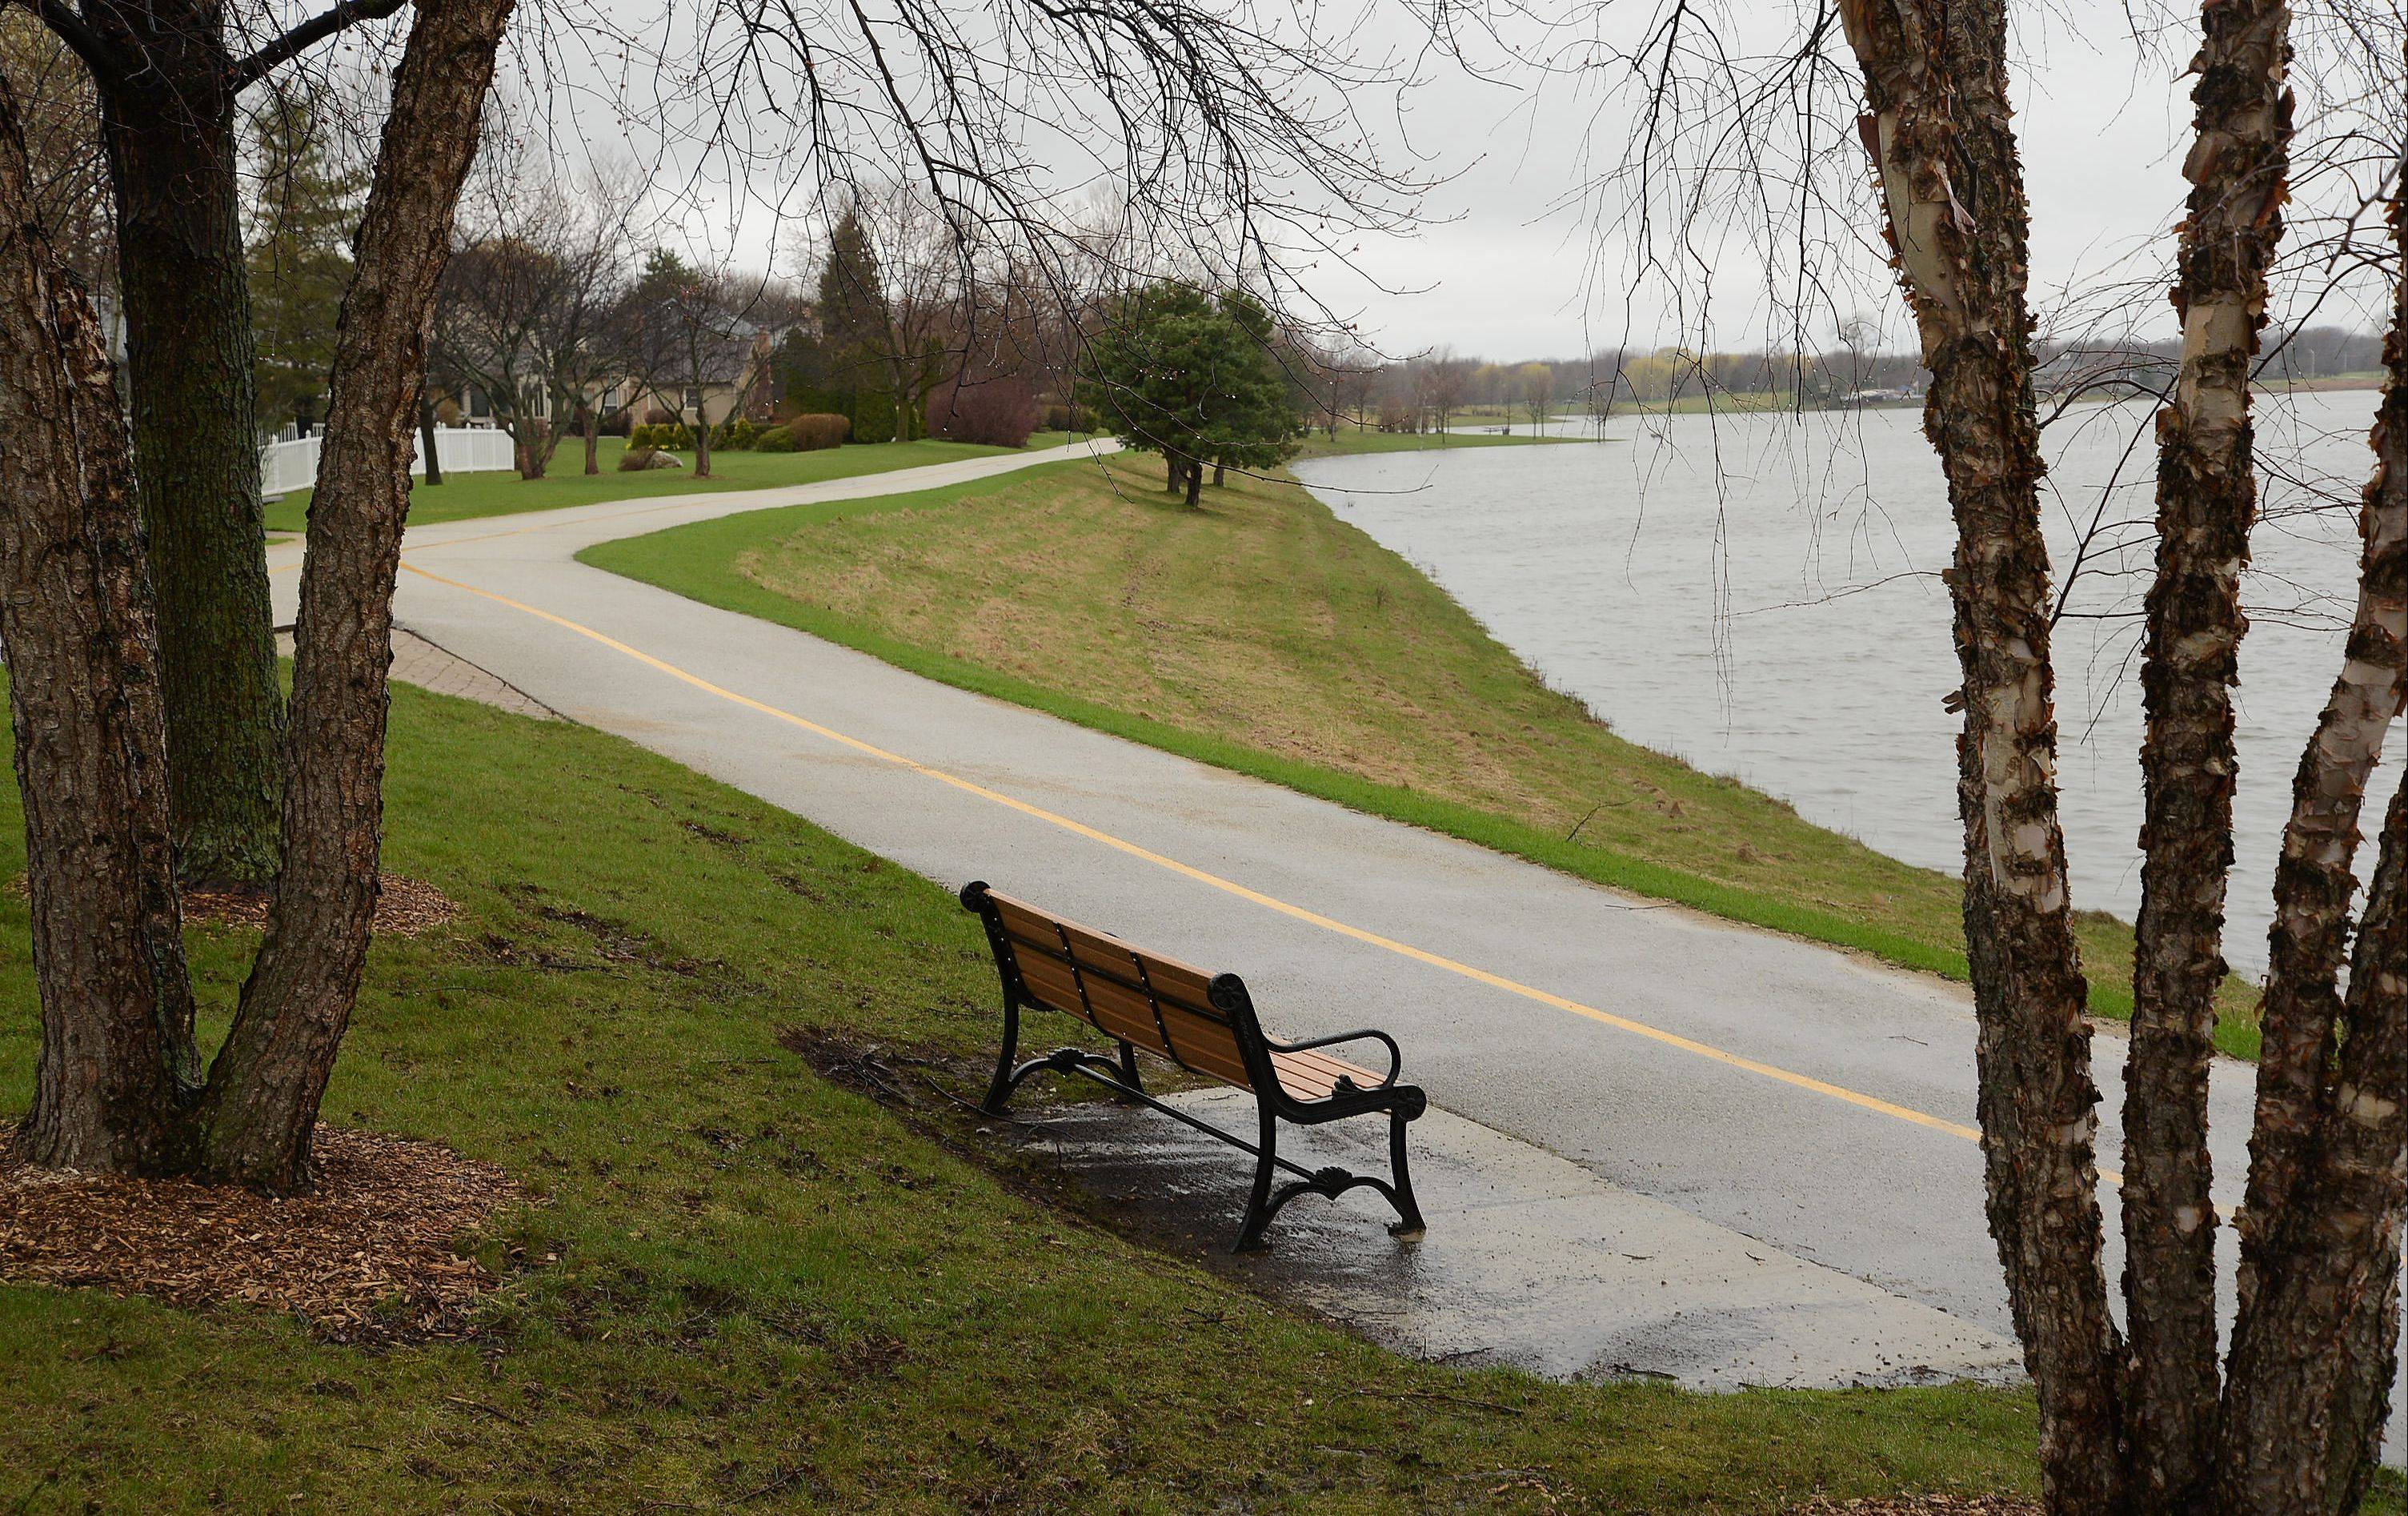 Fatal Lake Arlington trail accident renews calls for safety